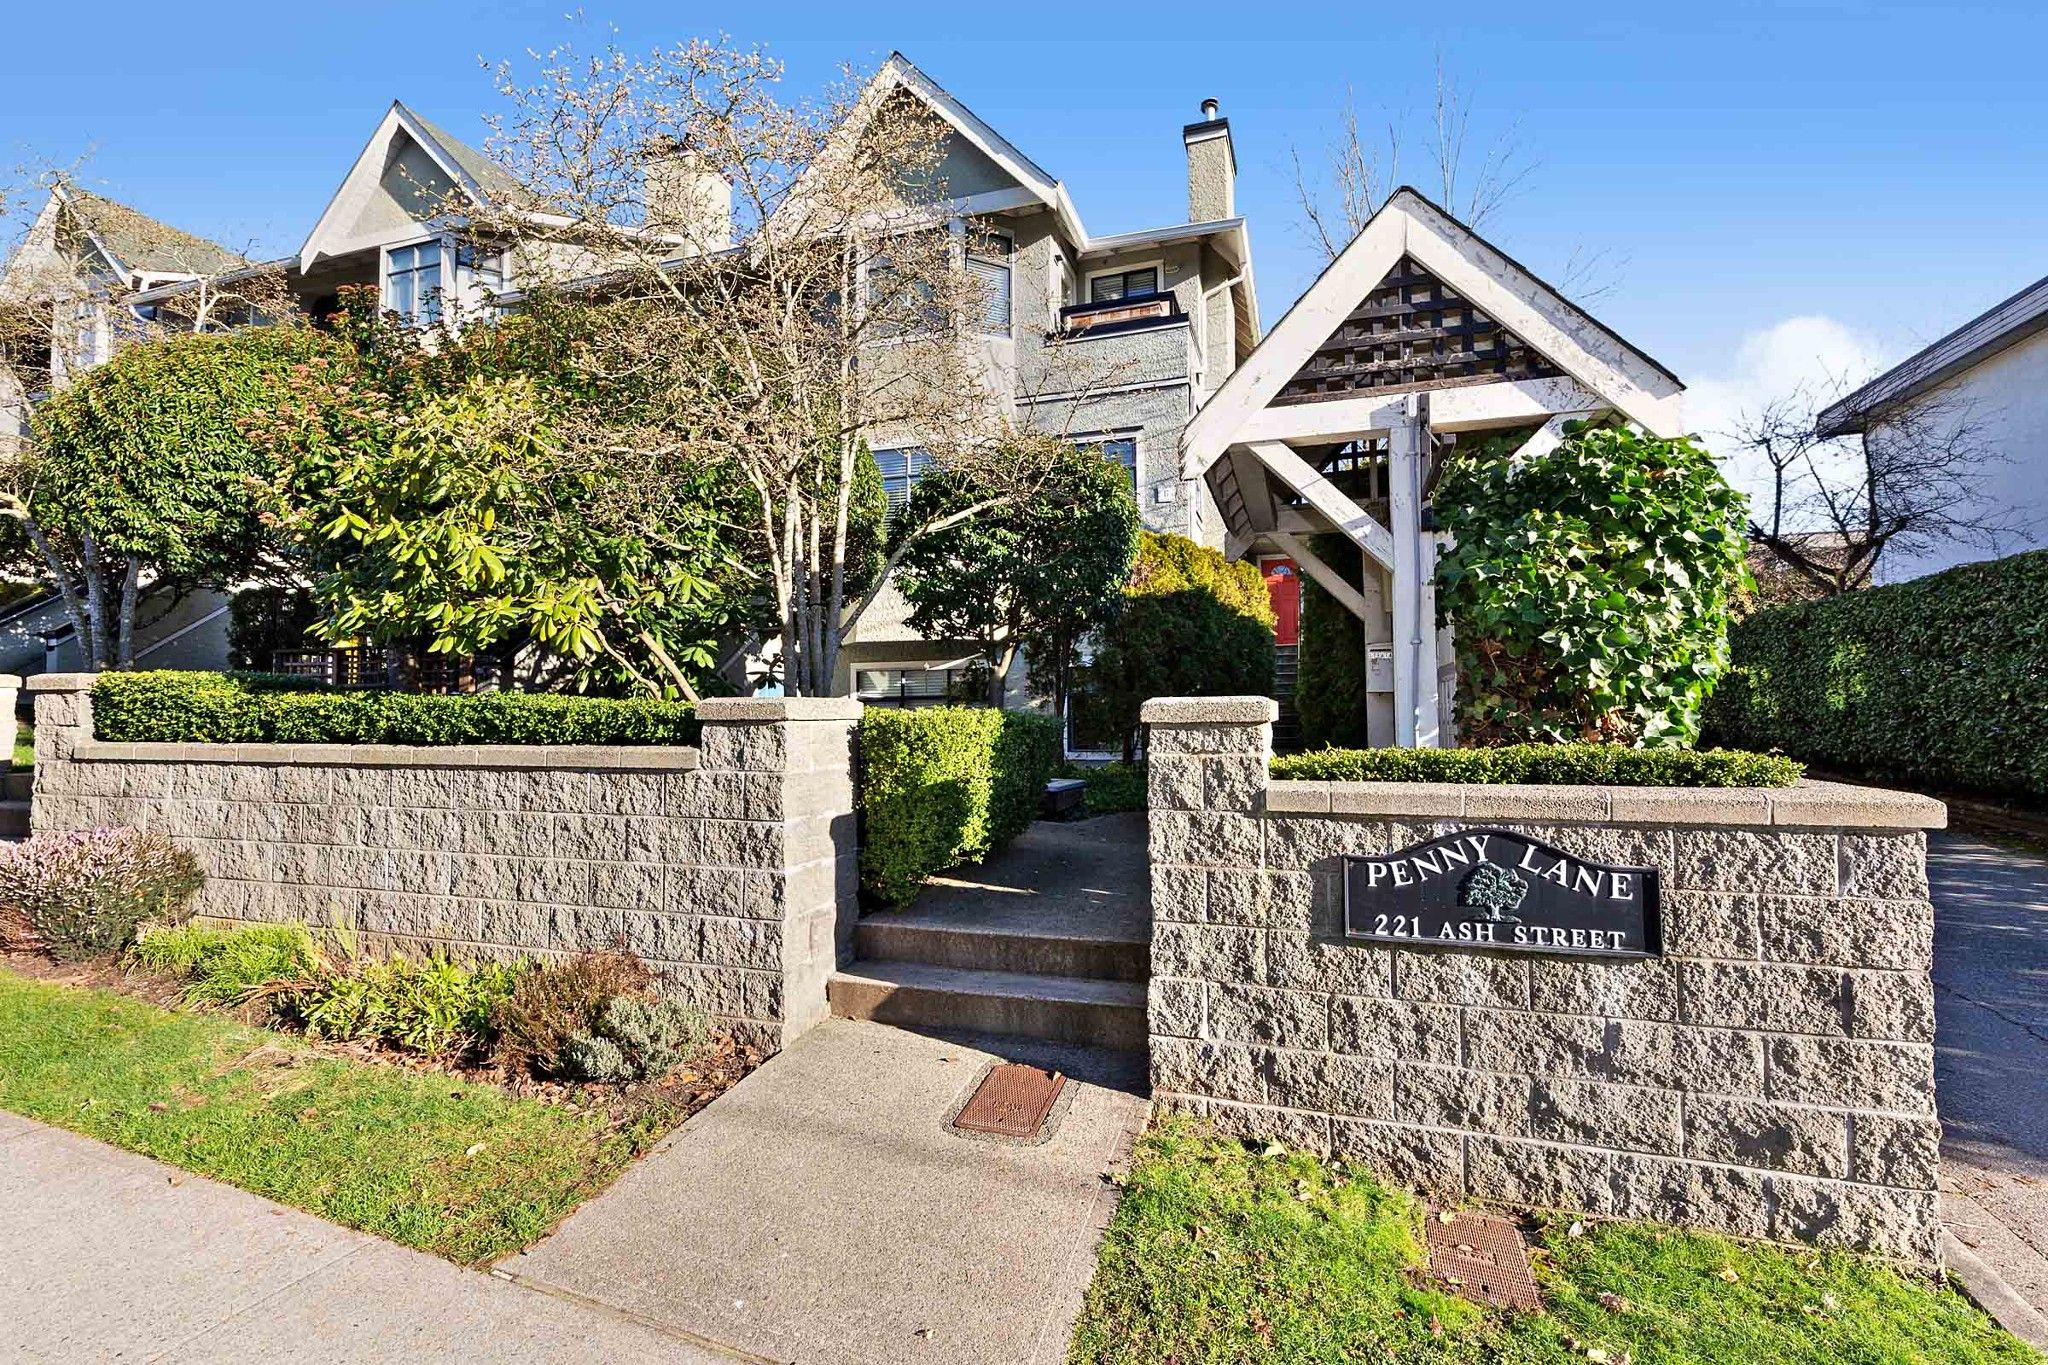 """Main Photo: 17 221 ASH Street in New Westminster: Uptown NW Townhouse for sale in """"PENNY LANE"""" : MLS®# R2531968"""